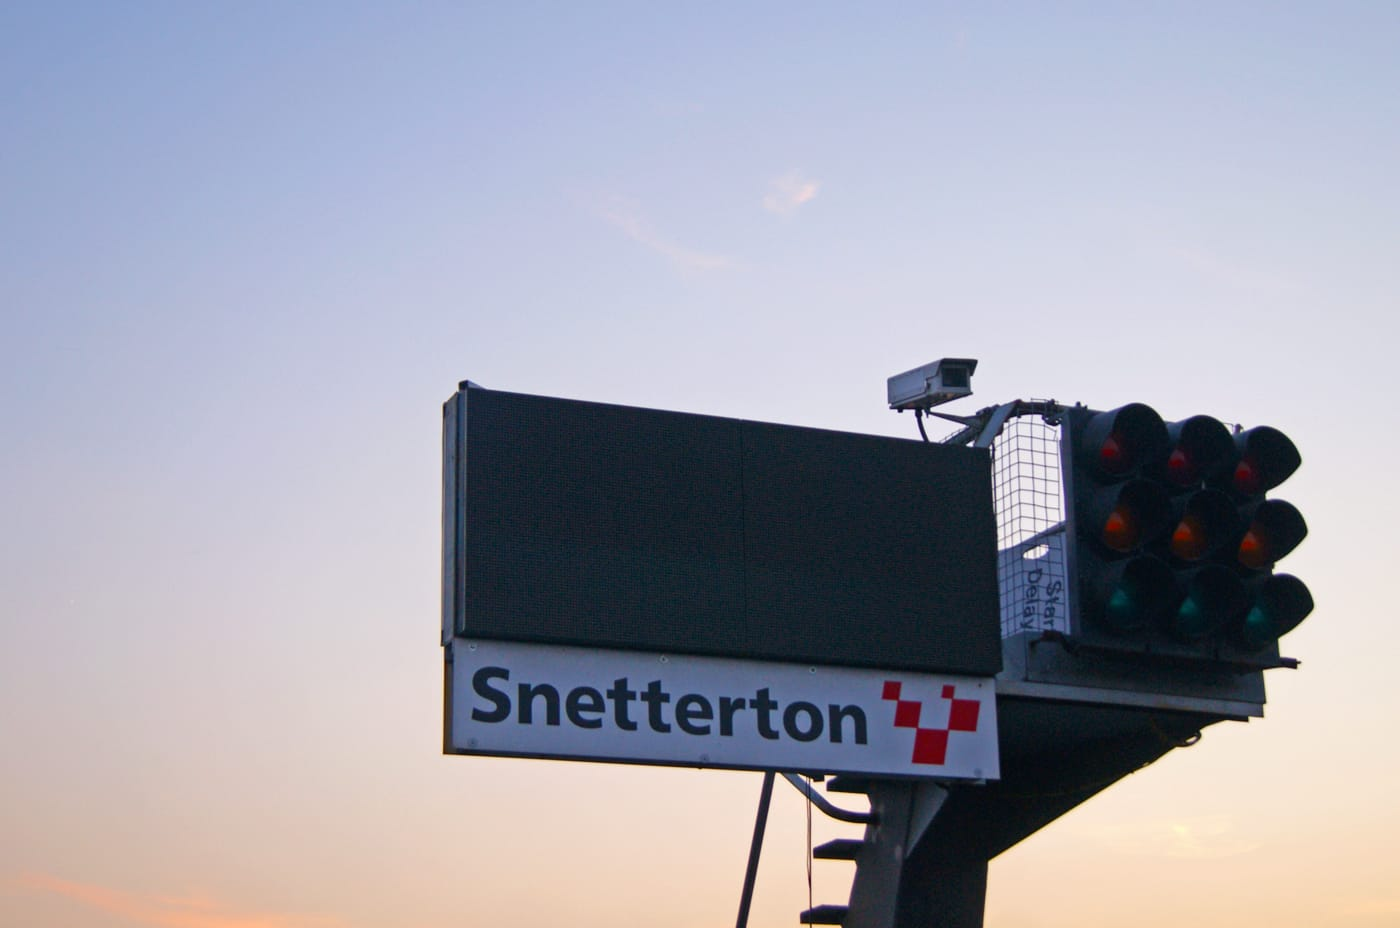 Snetterton 2019 Preview